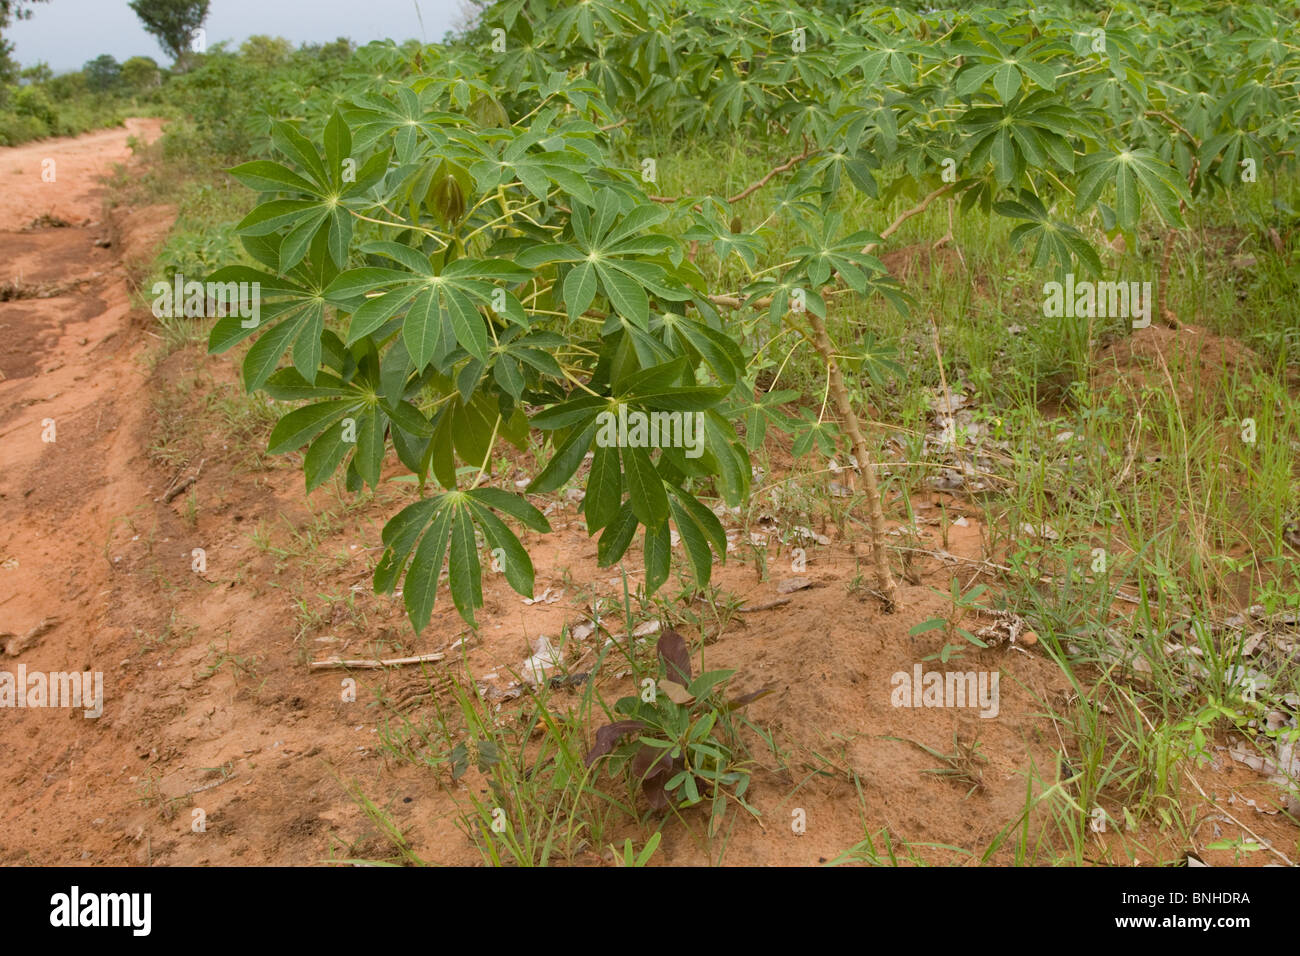 Cassava plants cultivated in the Gonja triangle, Ghana. Stock Photo